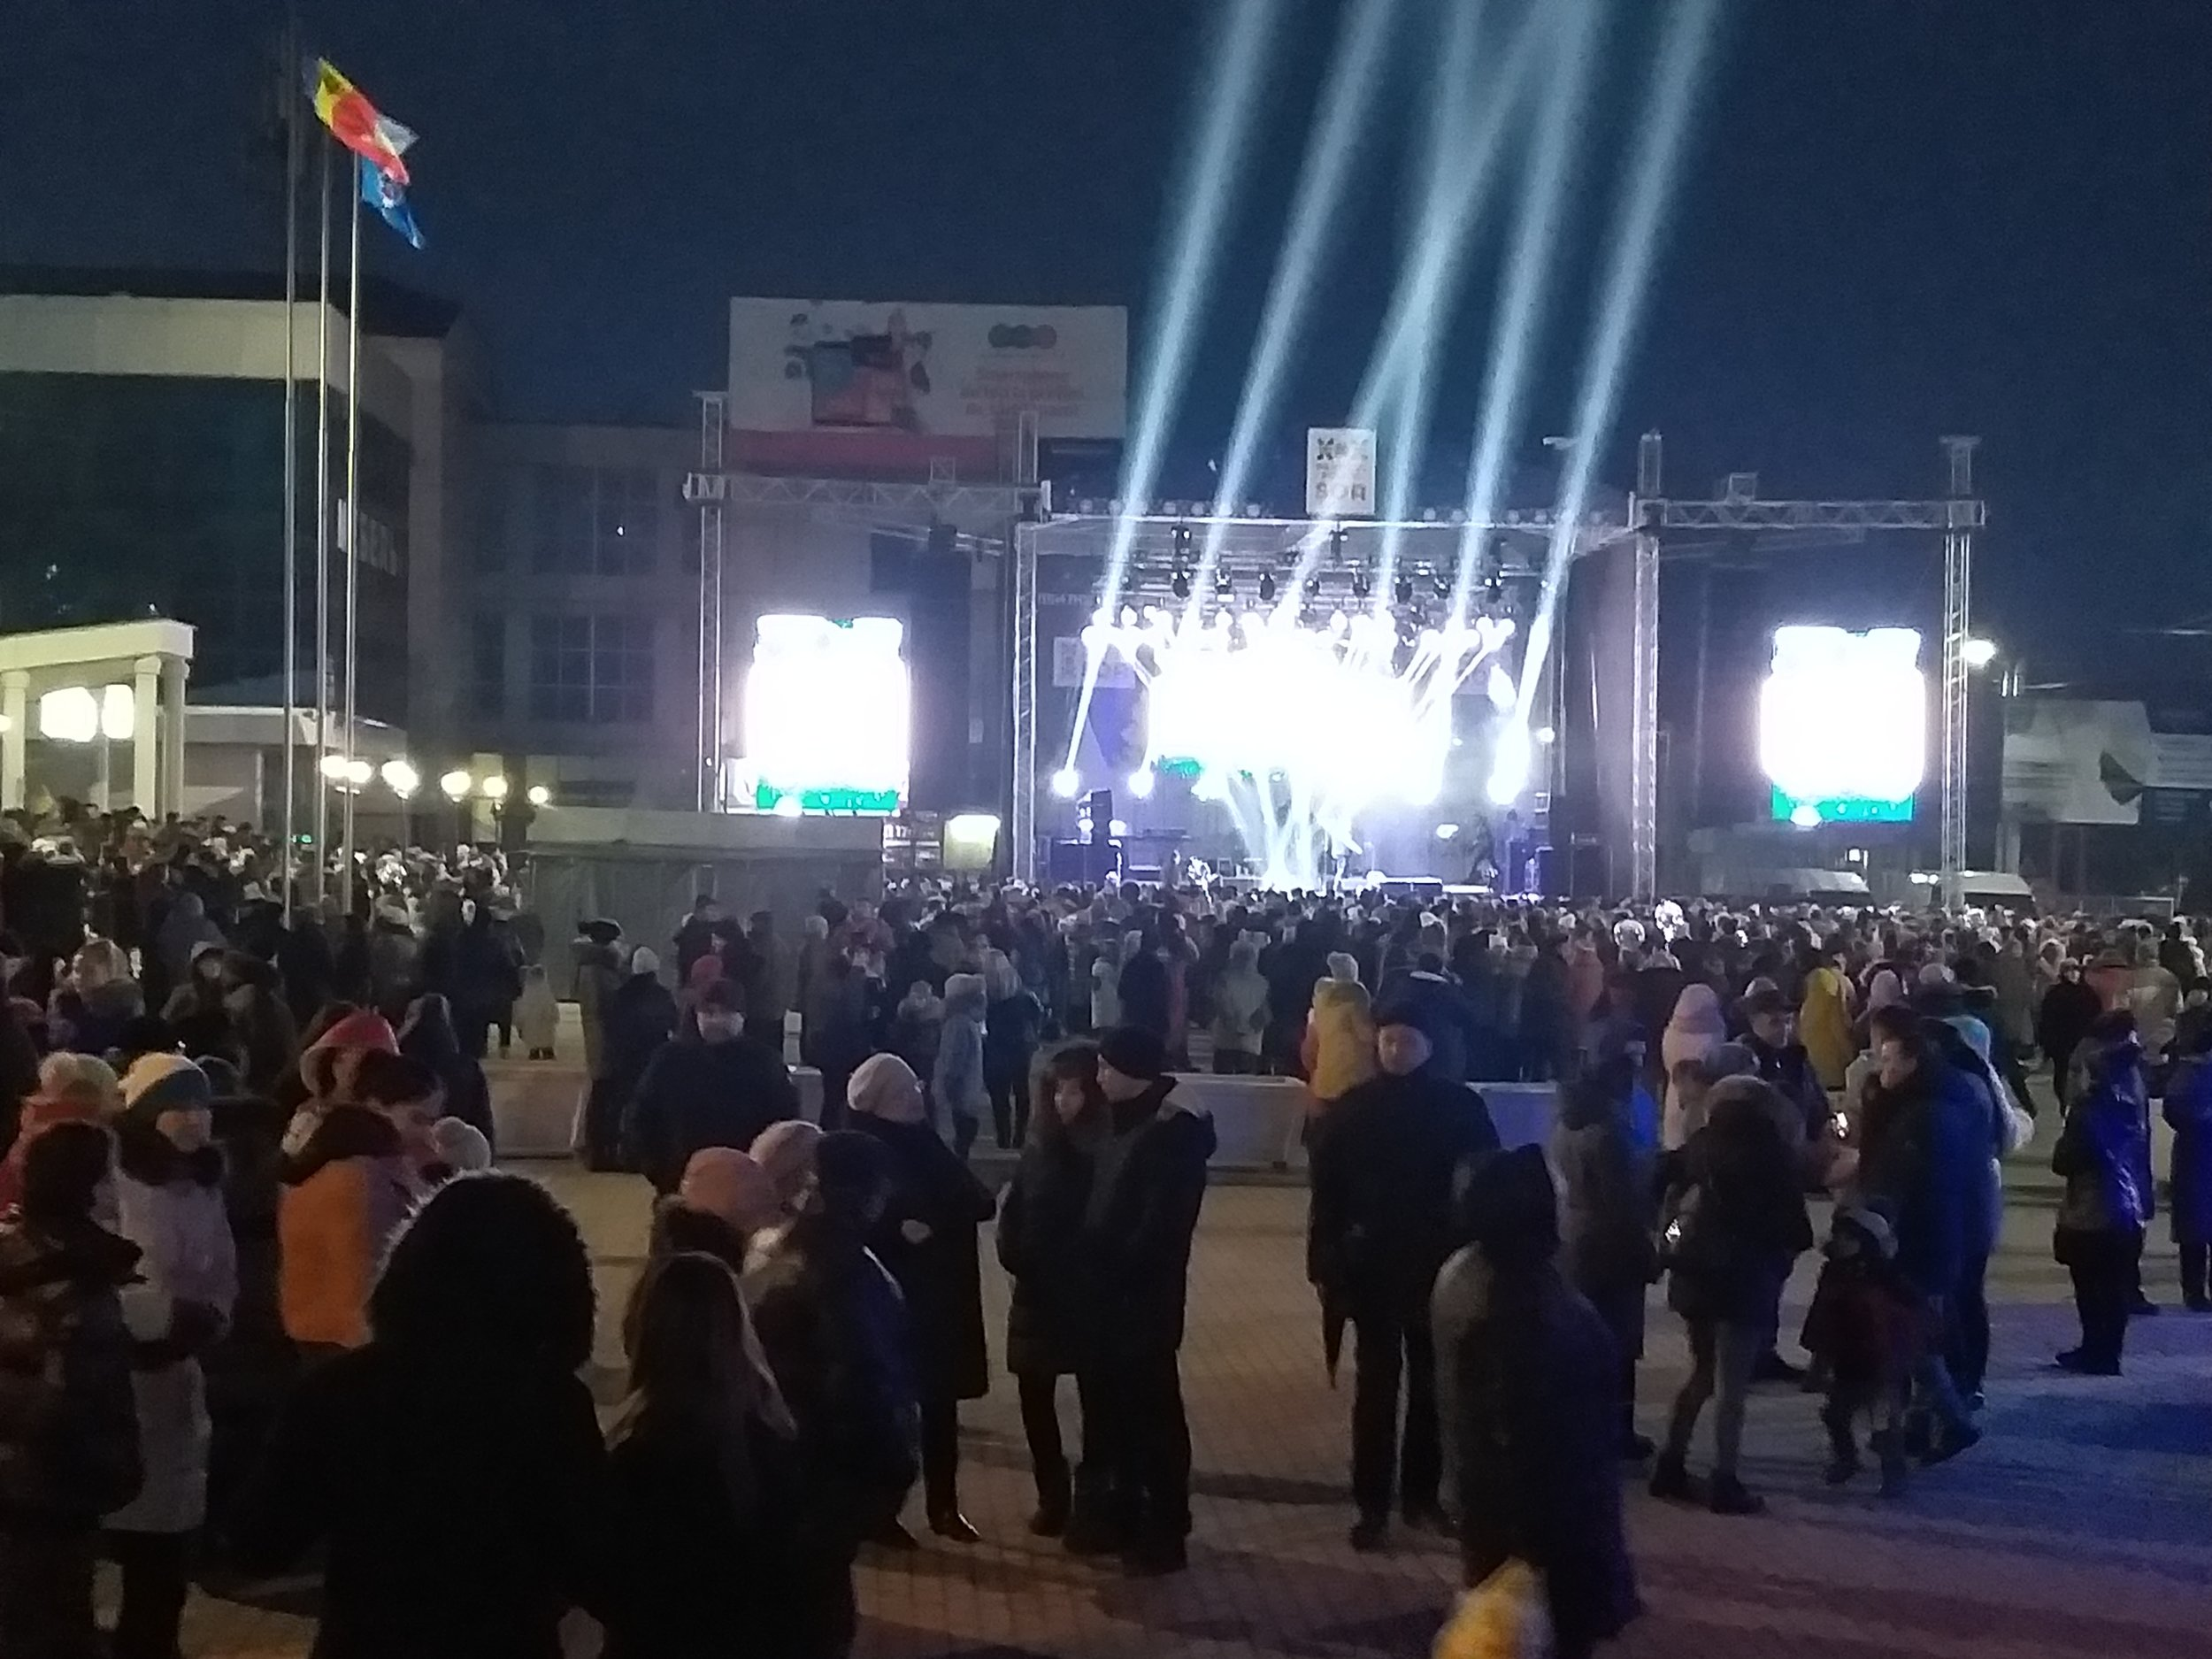 In DEC #45, IRI observers witnessed a public concert with party branding and speeches by party leaders . (January 2, 2019)